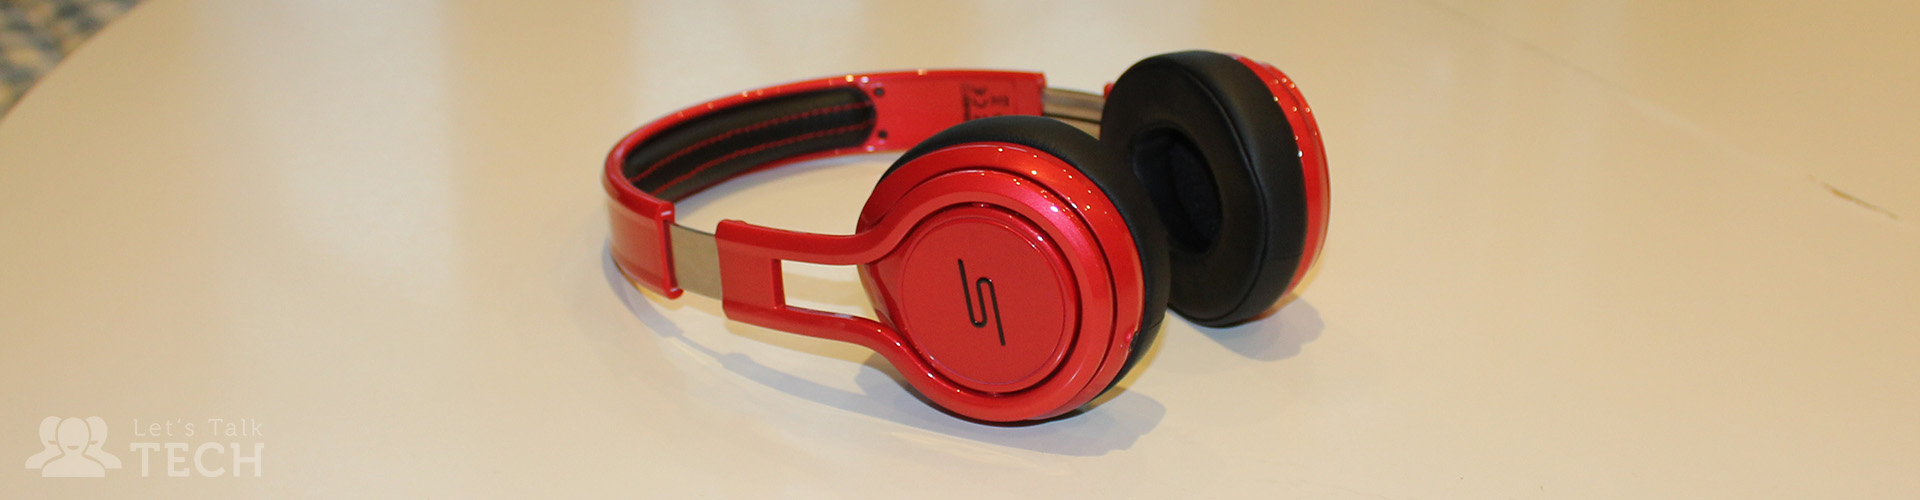 SMS Street by 50 On-Ear Headphones Review